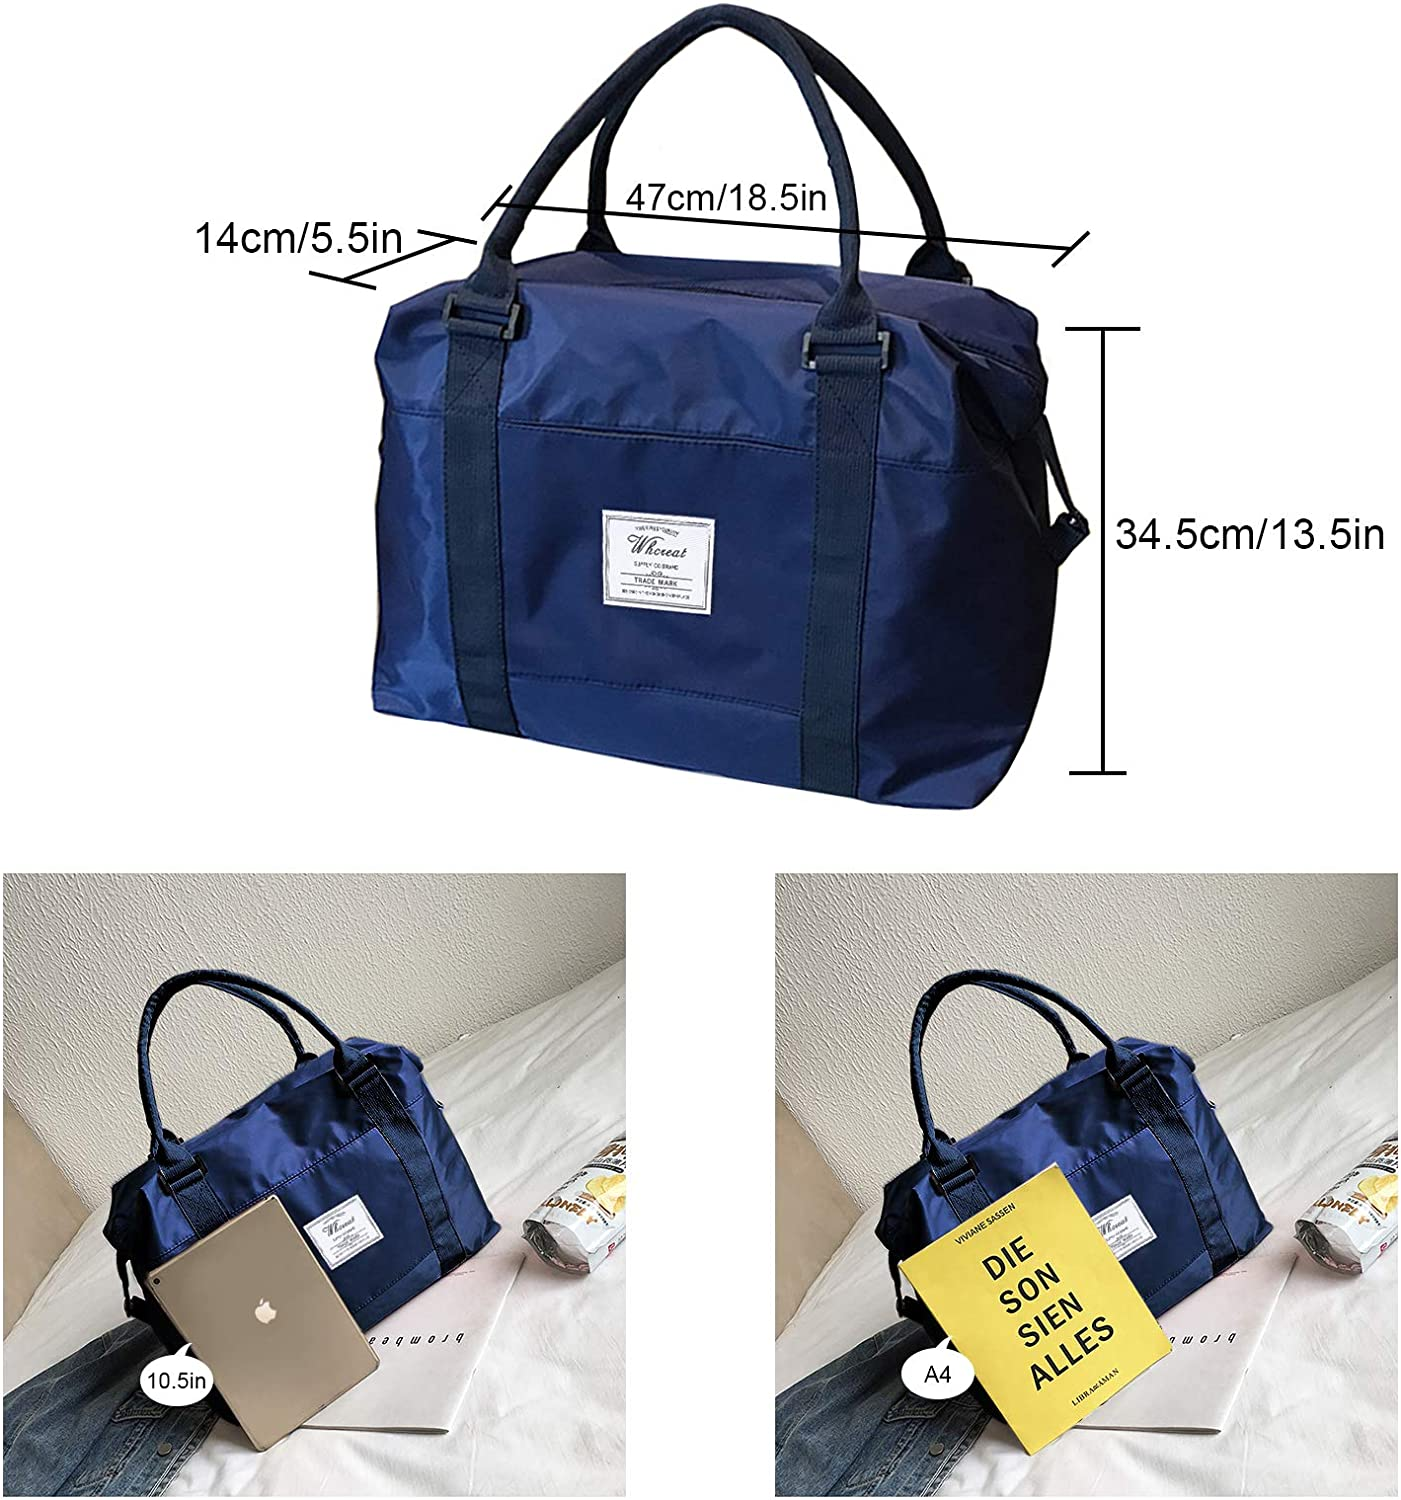 Darkblue WHCREAT Sports Gym Bag with Wet Pocket and Trolley Strap Water Resistant Travel Duffle for Men Women